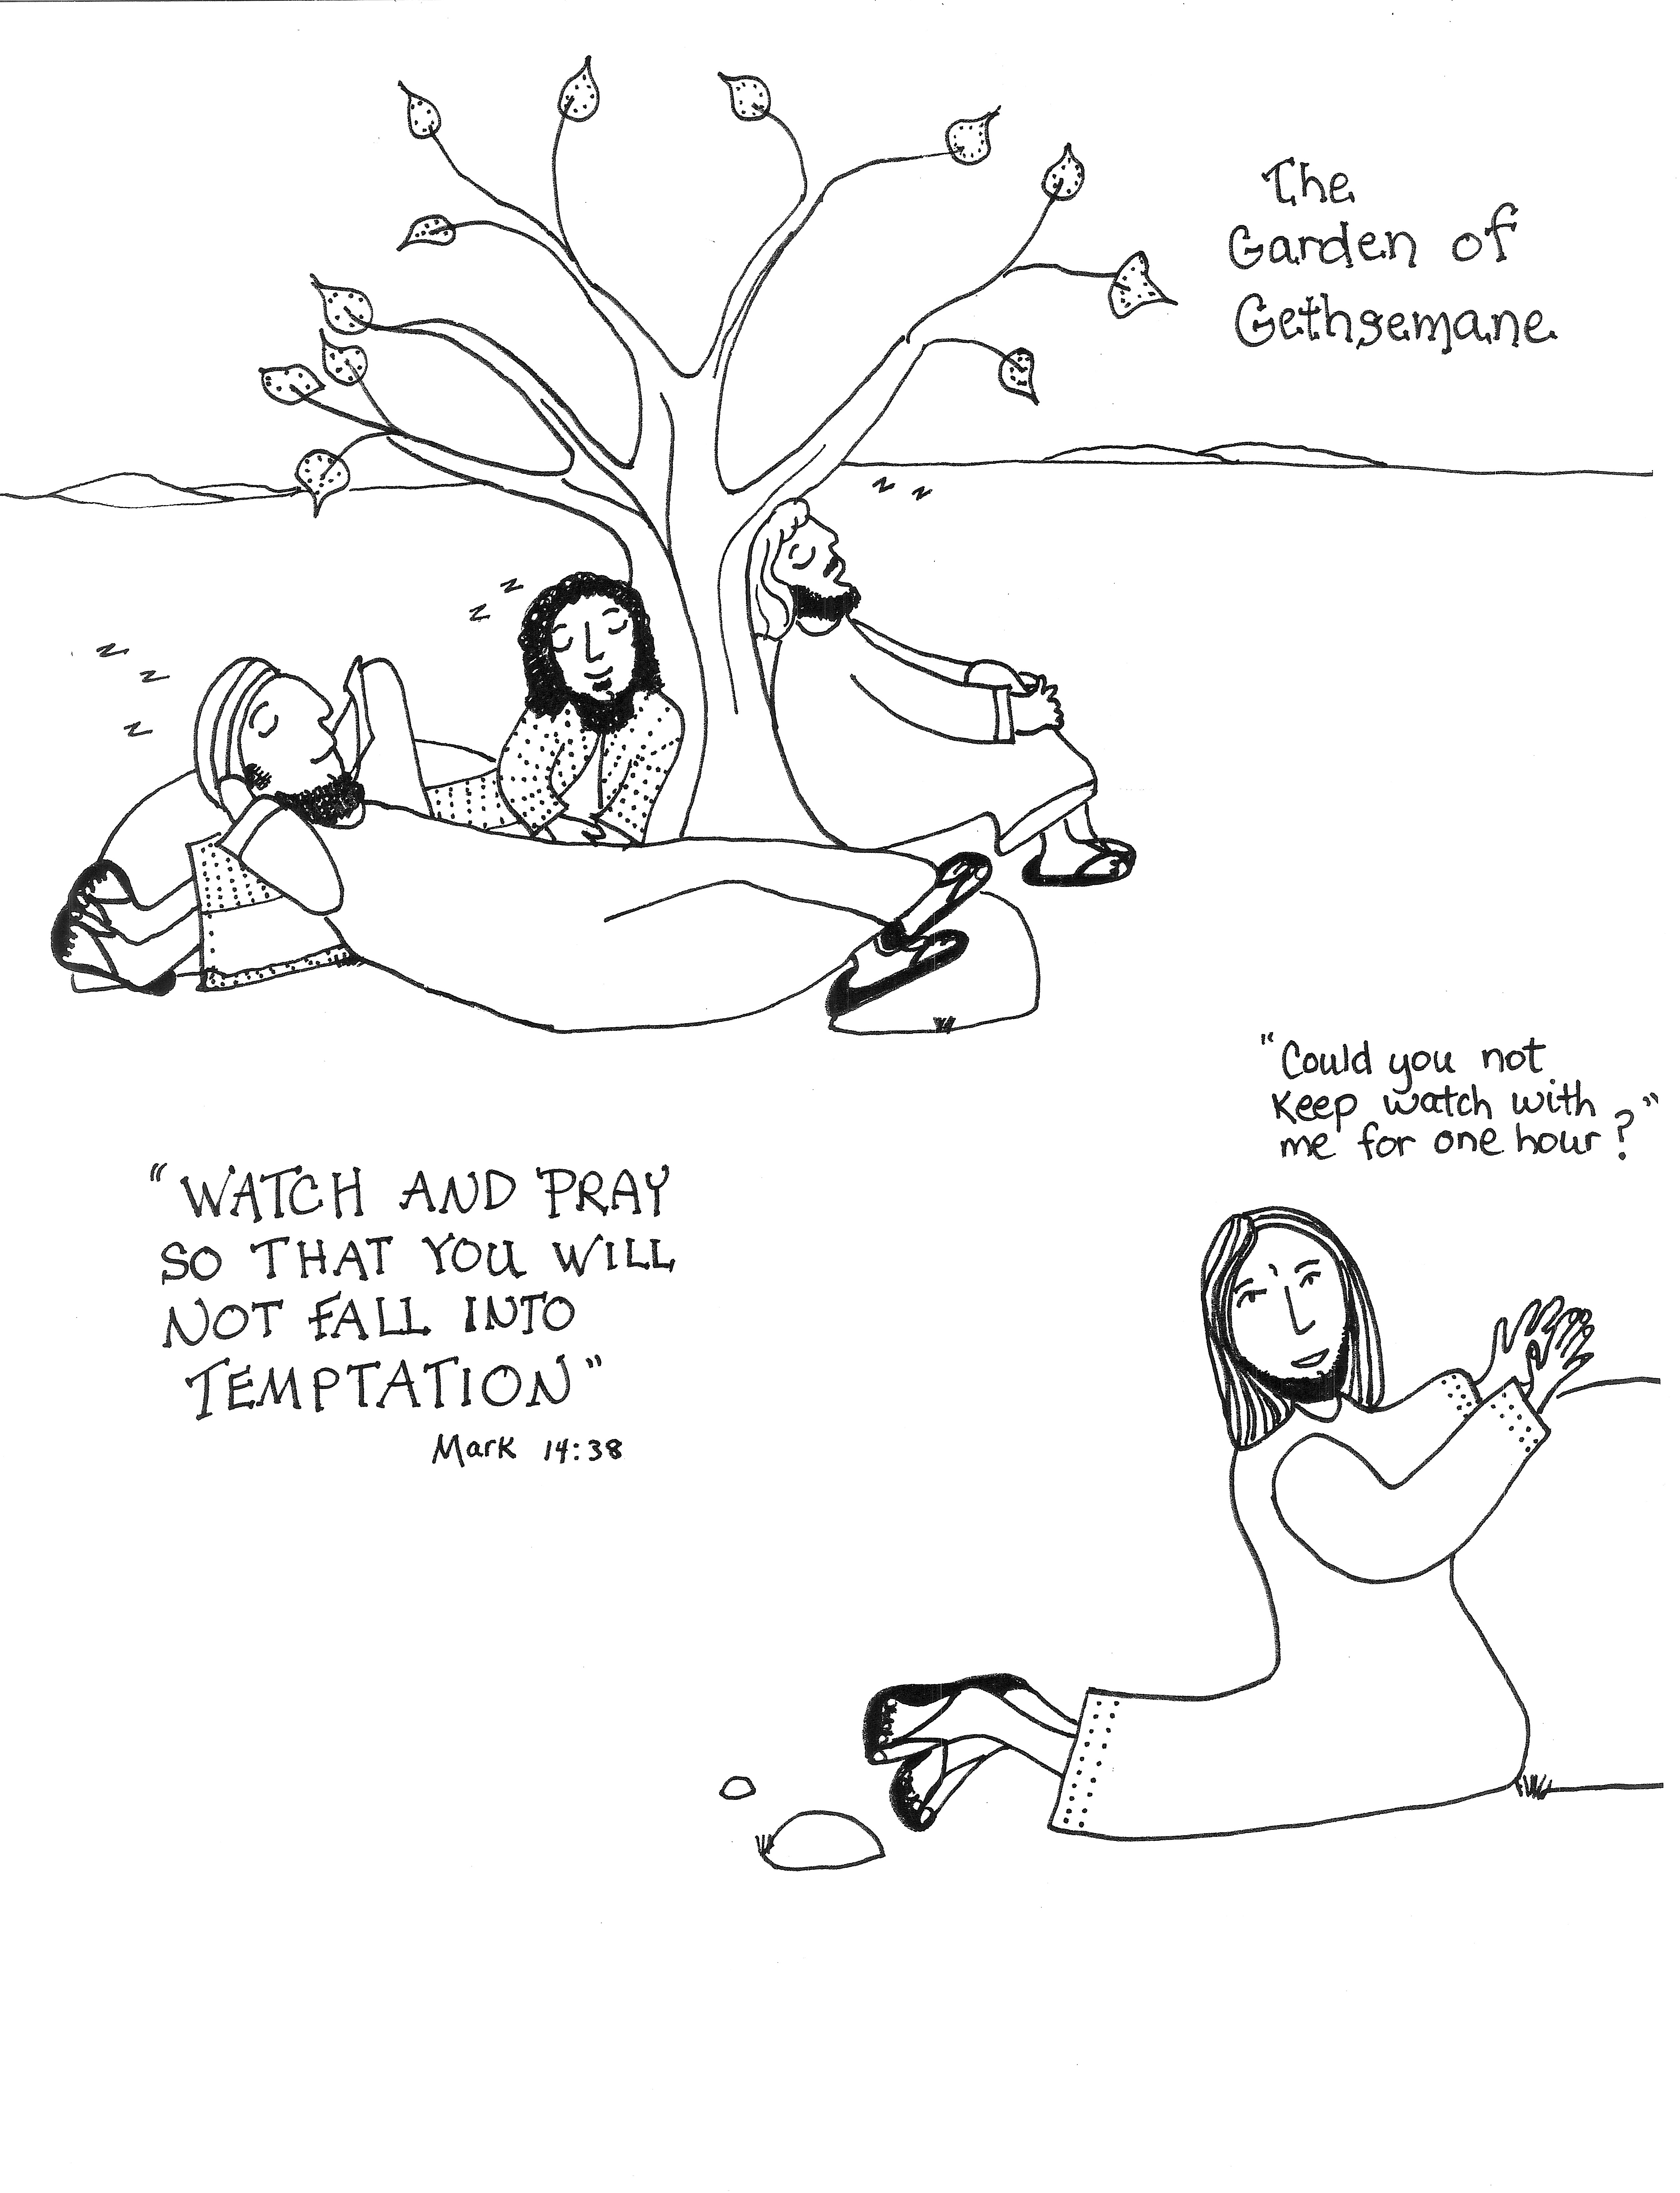 garden of gethsemane coloring pictures robin39s great coloring pages jesus in garden of gethsemane pictures coloring garden gethsemane of